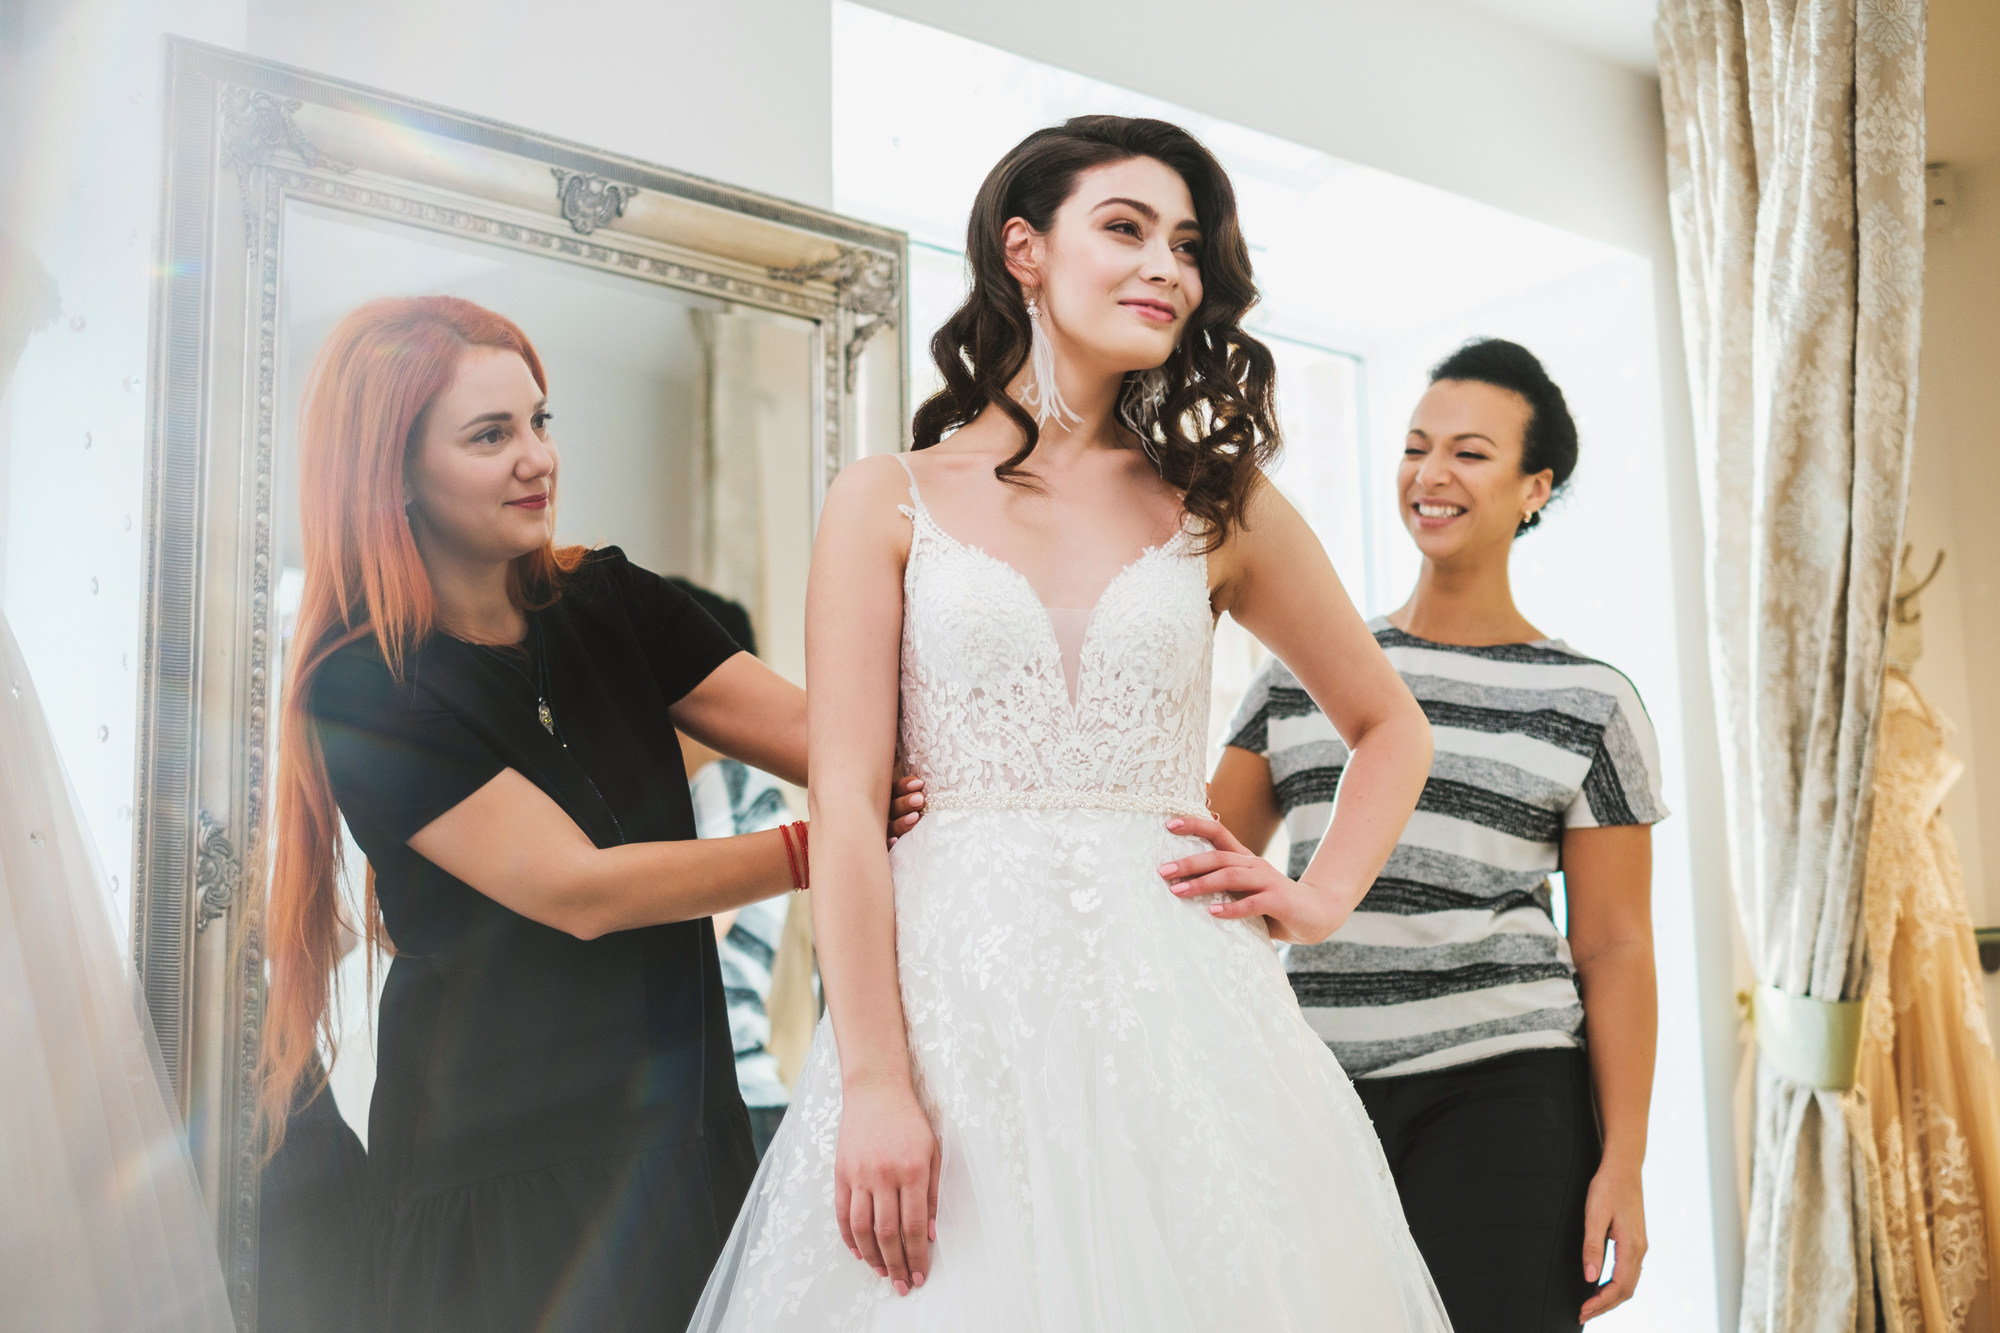 How Many People Should You Bring to Your Bridal Appointment?